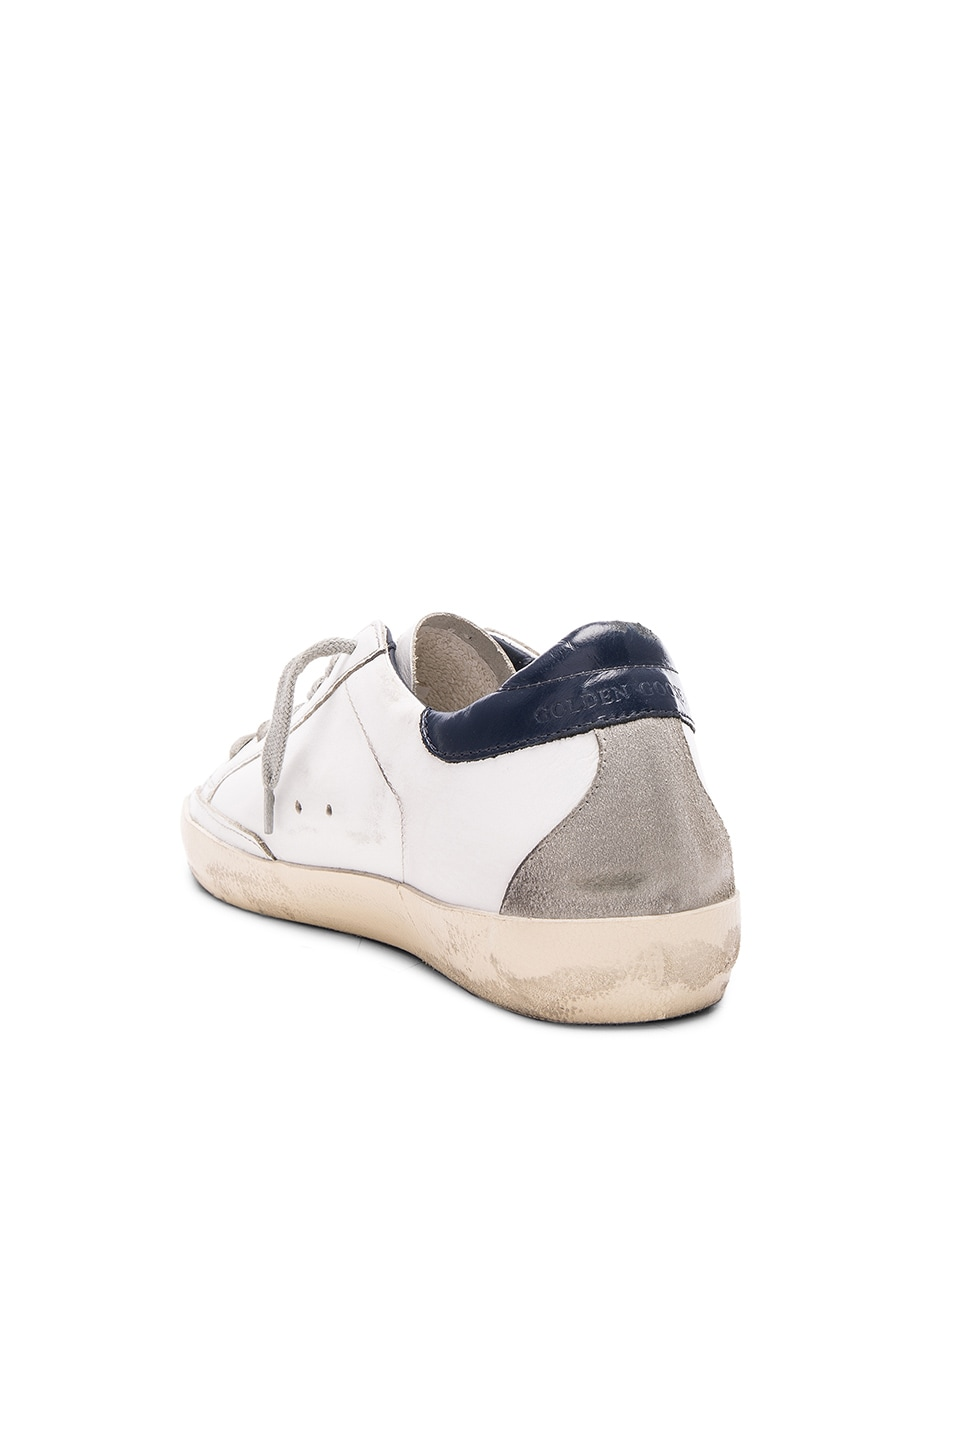 Image 3 of Golden Goose Leather Superstar Low Sneakers in White & Blue